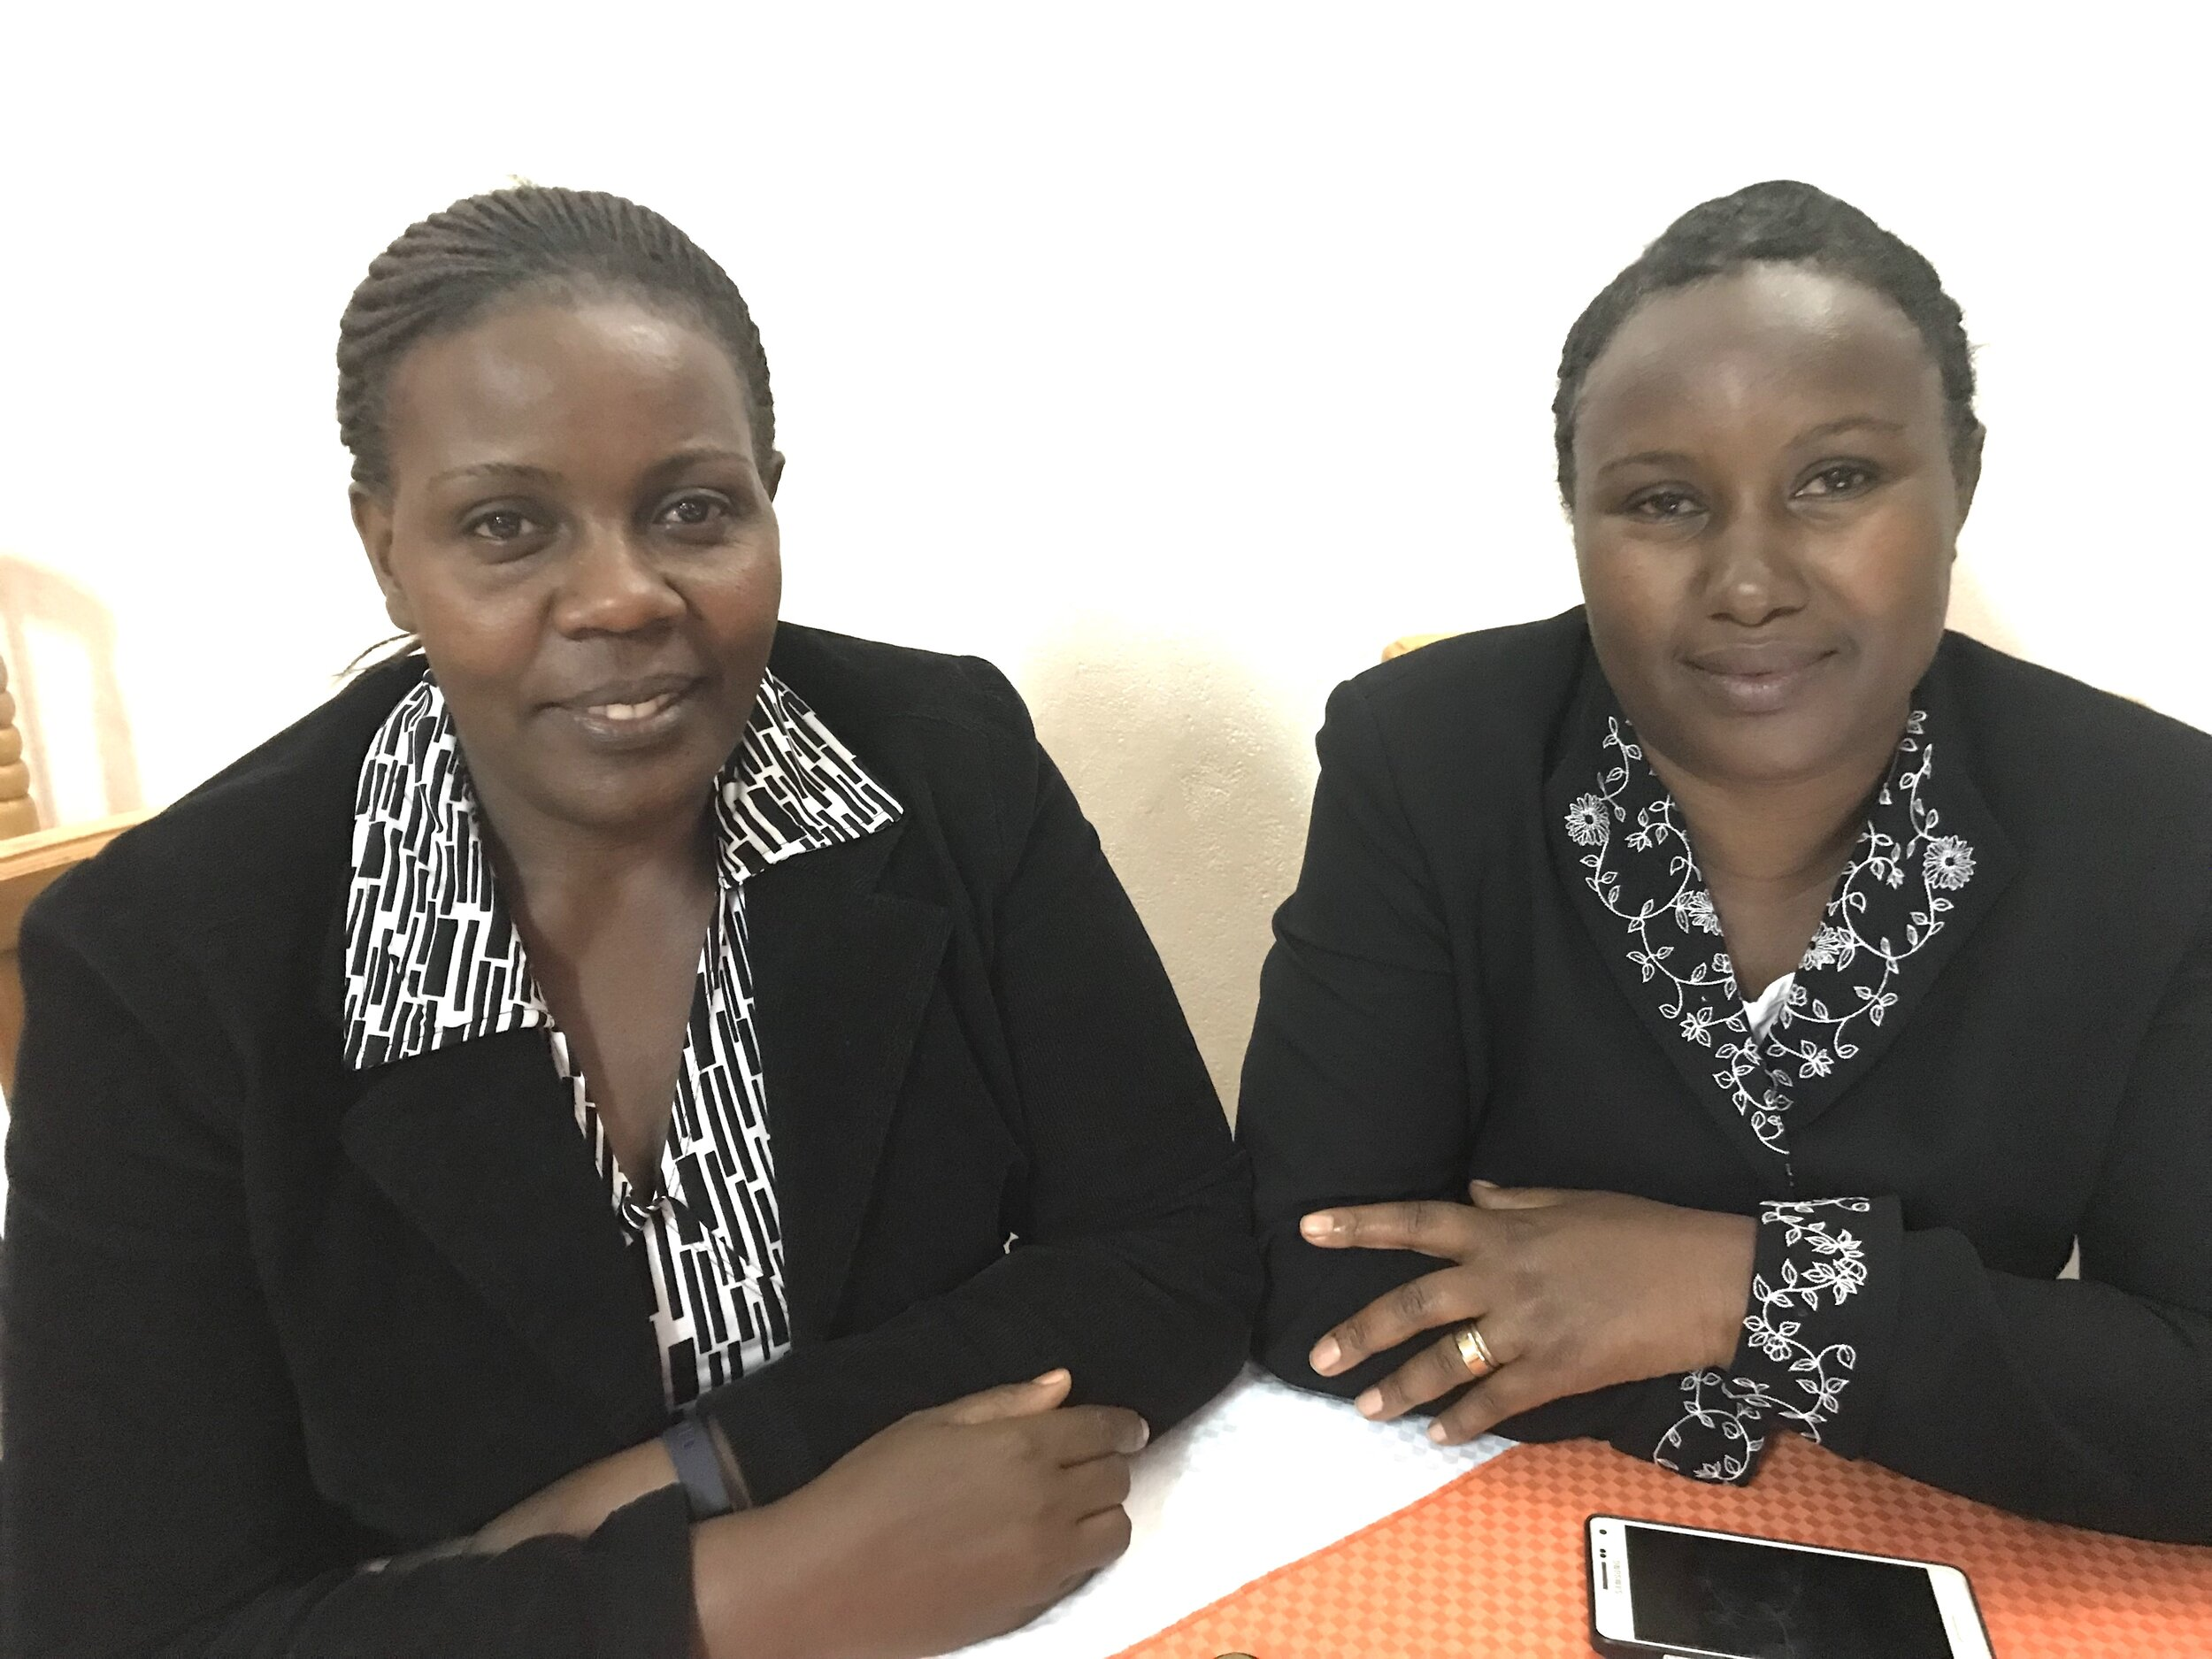 2 Beautiful Professional Ugandan Women: Lydia Komugisha and Generous Turinawe. Lydia is a Hospital Administrator and the past Chair of the ACT Uganda board. Of course, Generous is our highly competent Director of ACT!